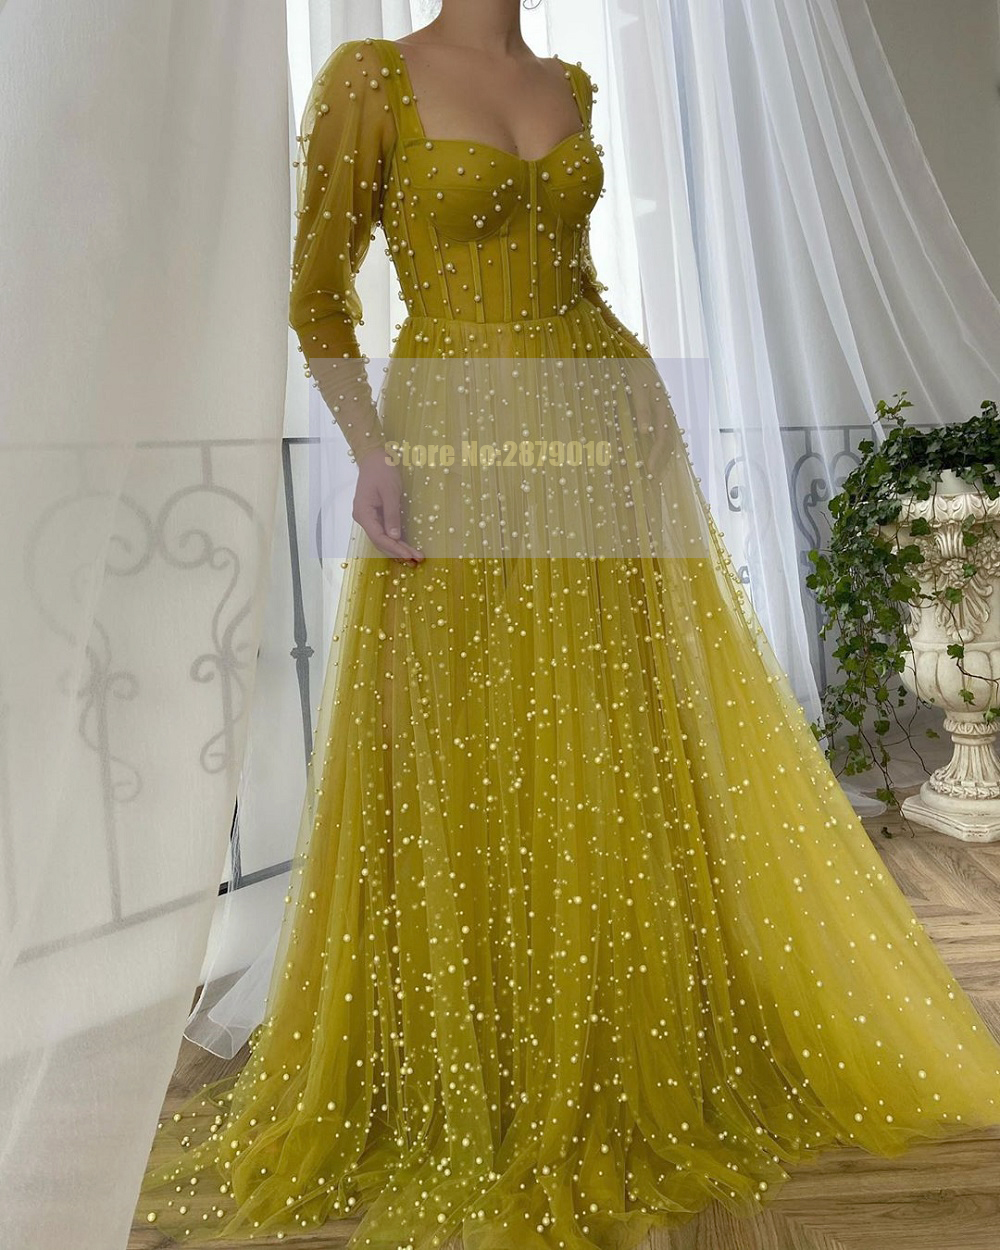 Illusion Arabic Pearls Sweetheart Evening Dress Floor-Length Beaded Prom Dress Celebrity Dress Plus Size 2020 Dubai Formal